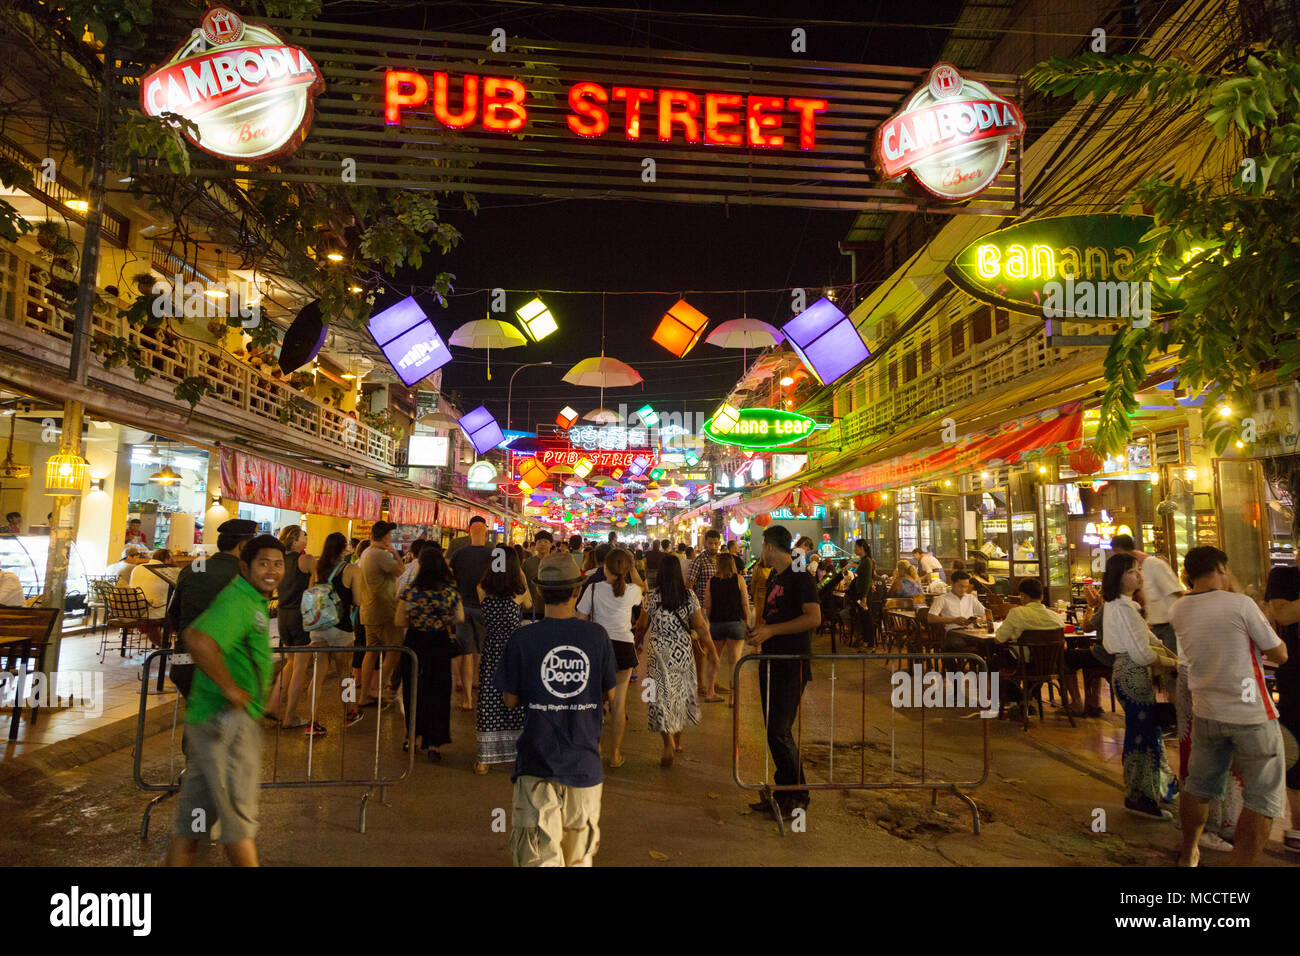 Crowds of tourists in Pub Street, Siem Reap town at night, Siem Reap, Cambodia Asia - Stock Image